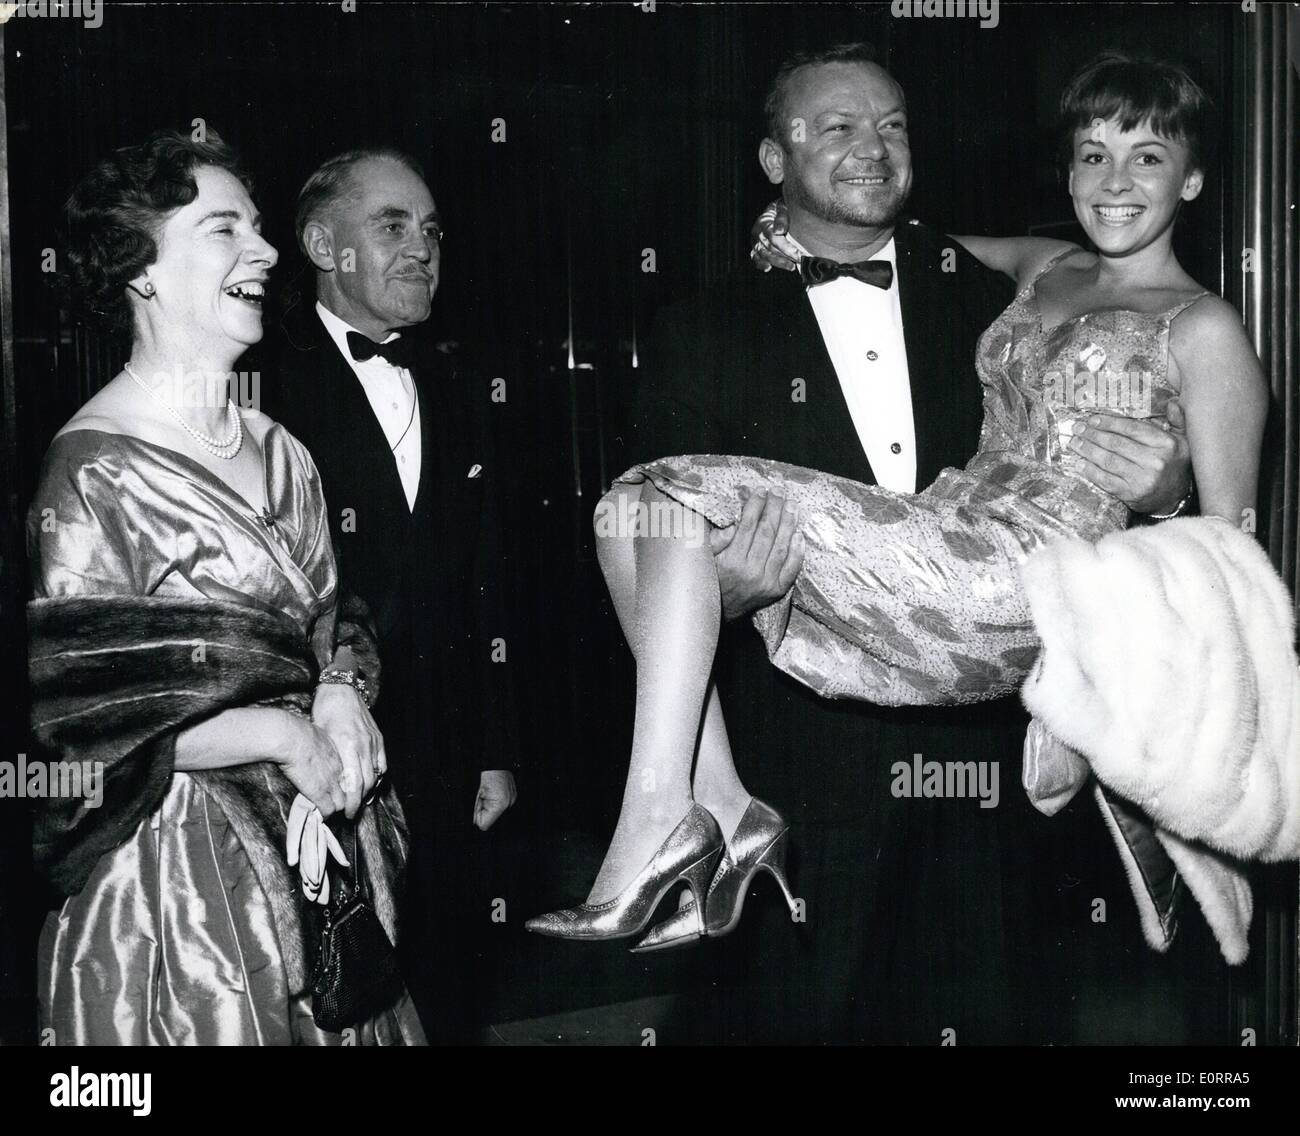 May 05, 1960 - Hollywood ''Tough Guy'' Aldo Ray -accompanied by his English wife-21 year old Johann- his bride of only two months- attended the premier at the Leicester Square Theatre-last evening of his new film- ''The Day they Robbed The Bank of England''. Keystone photo shows: Aldo Ray carries hois yooung bride into the Theatre last night-watched by her parents-Major General Roland and Mrs Bennett... Their (difference'-over the marriage of their daughter-appear to have been resolved amiably. - Stock Image